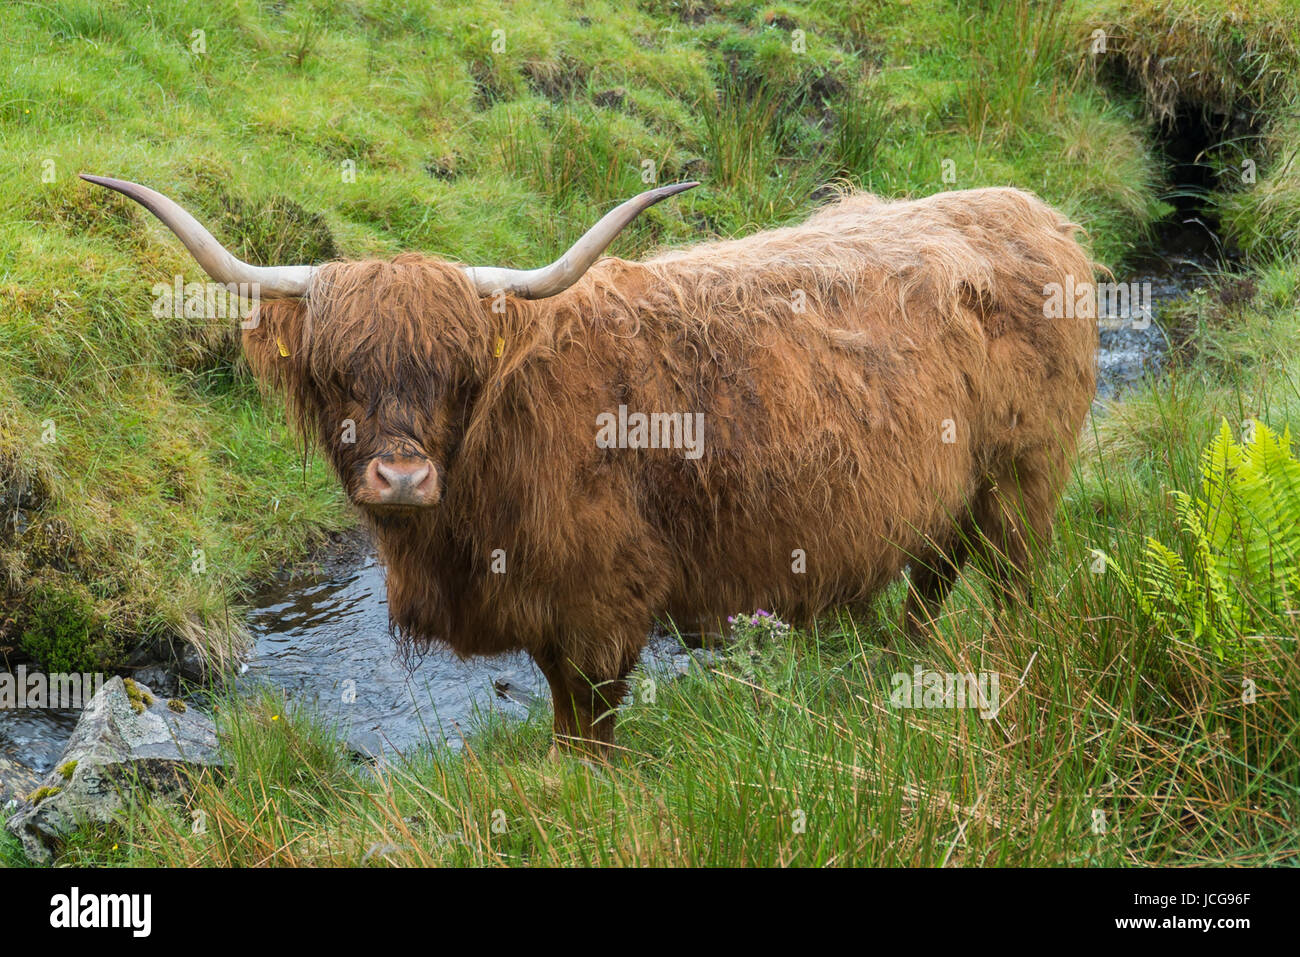 Scottish Beef Stock Photos & Scottish Beef Stock Images ...